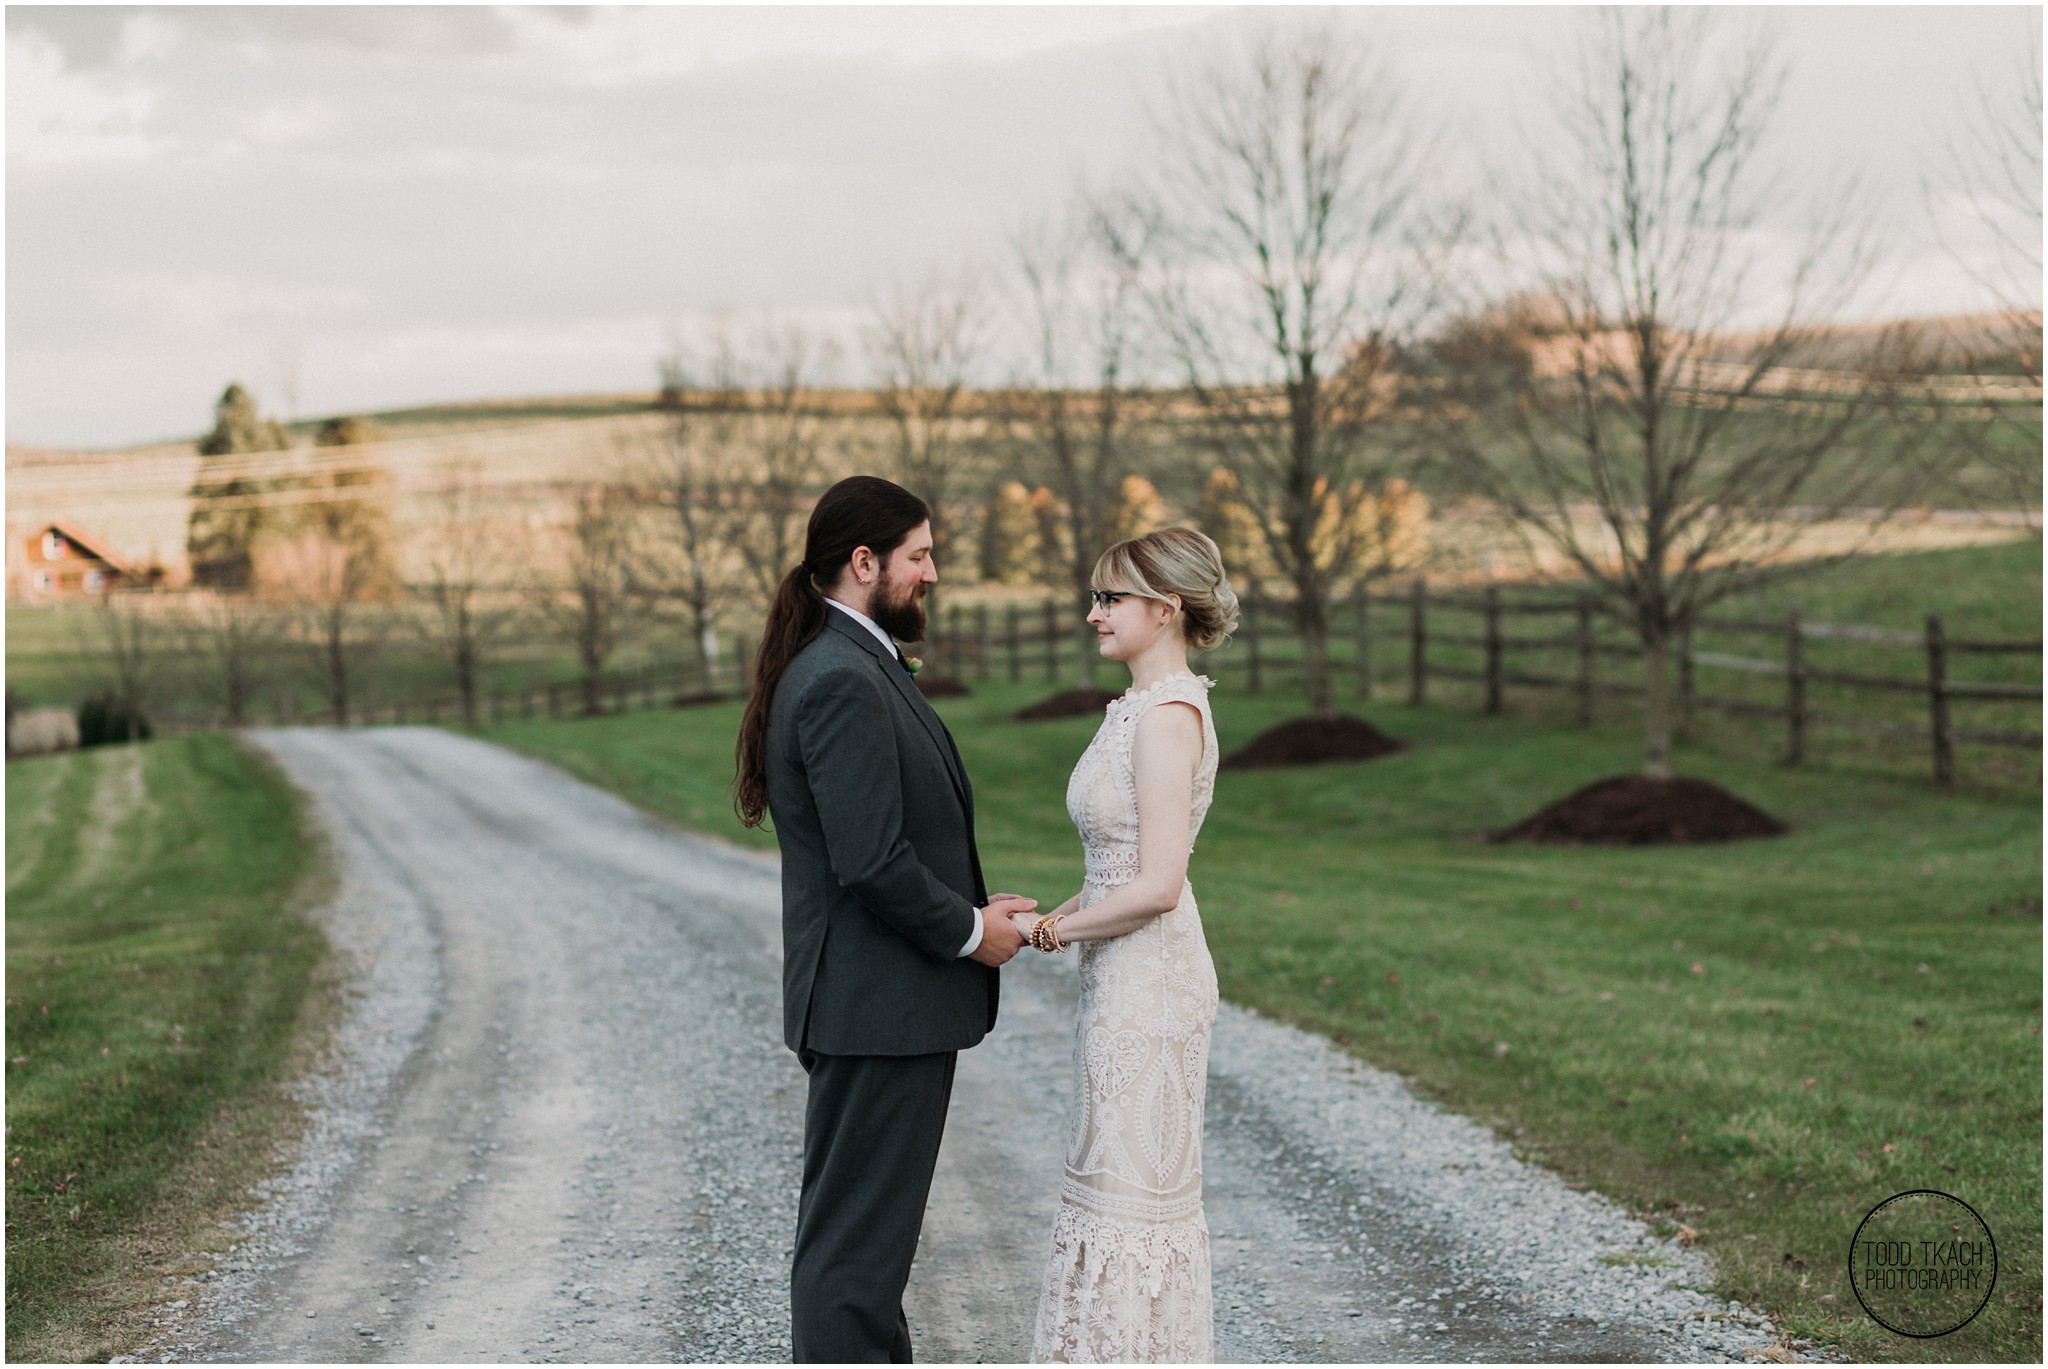 Alyse & Michael Wedding - Winding Road